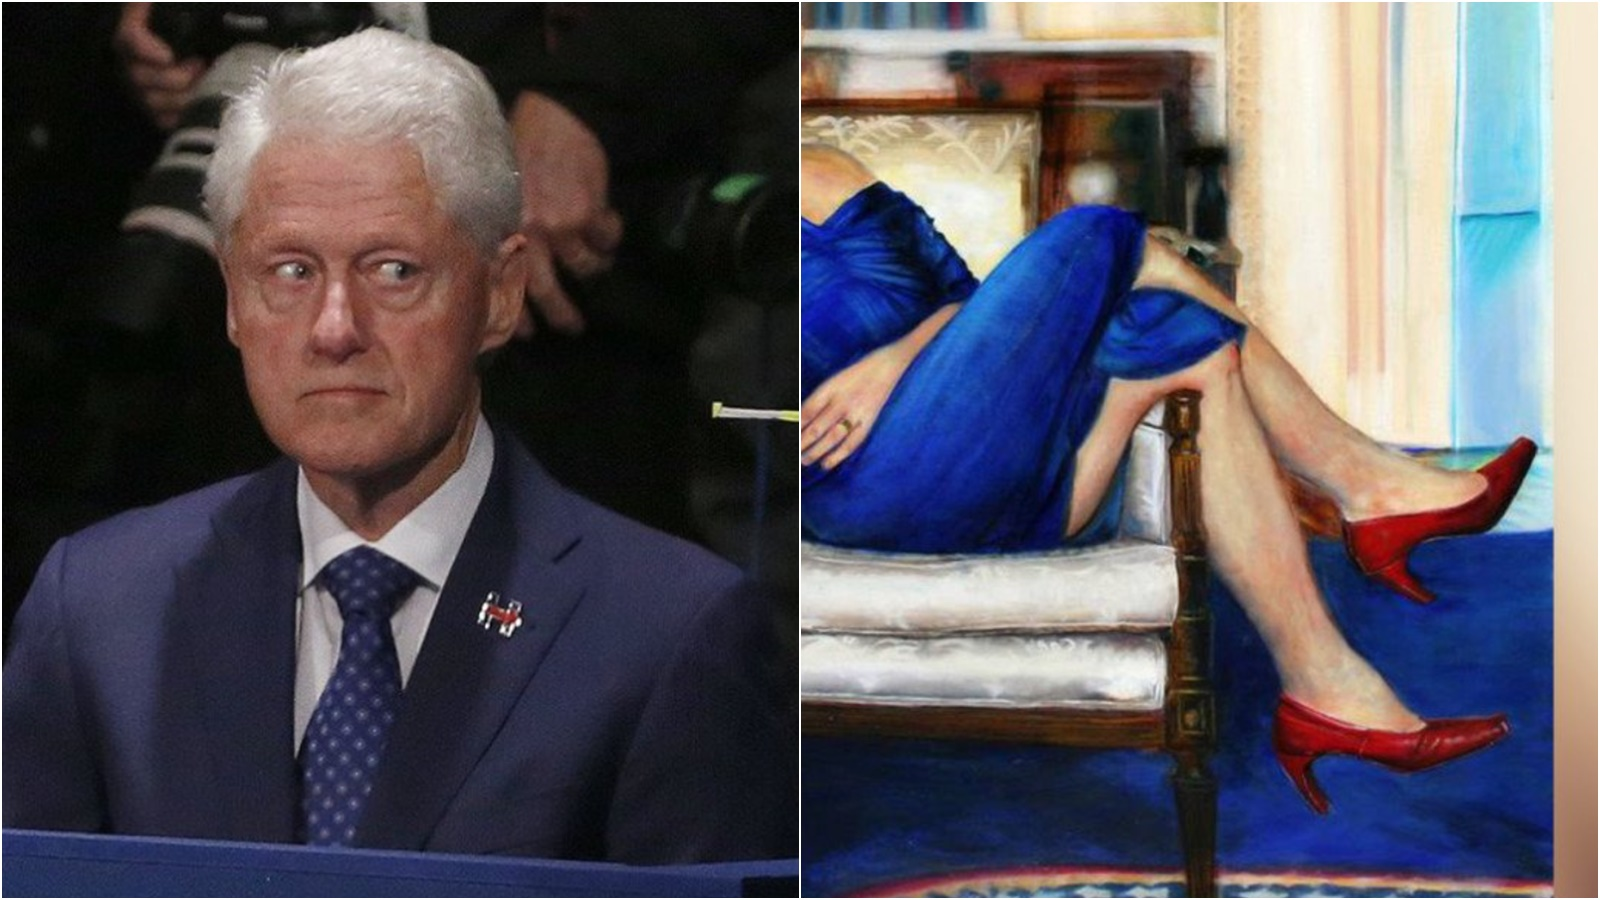 Jeffrey Epstein Had BIZARRE Painting Of Bill Clinton Wearing a Blue DRESS and Red Heels